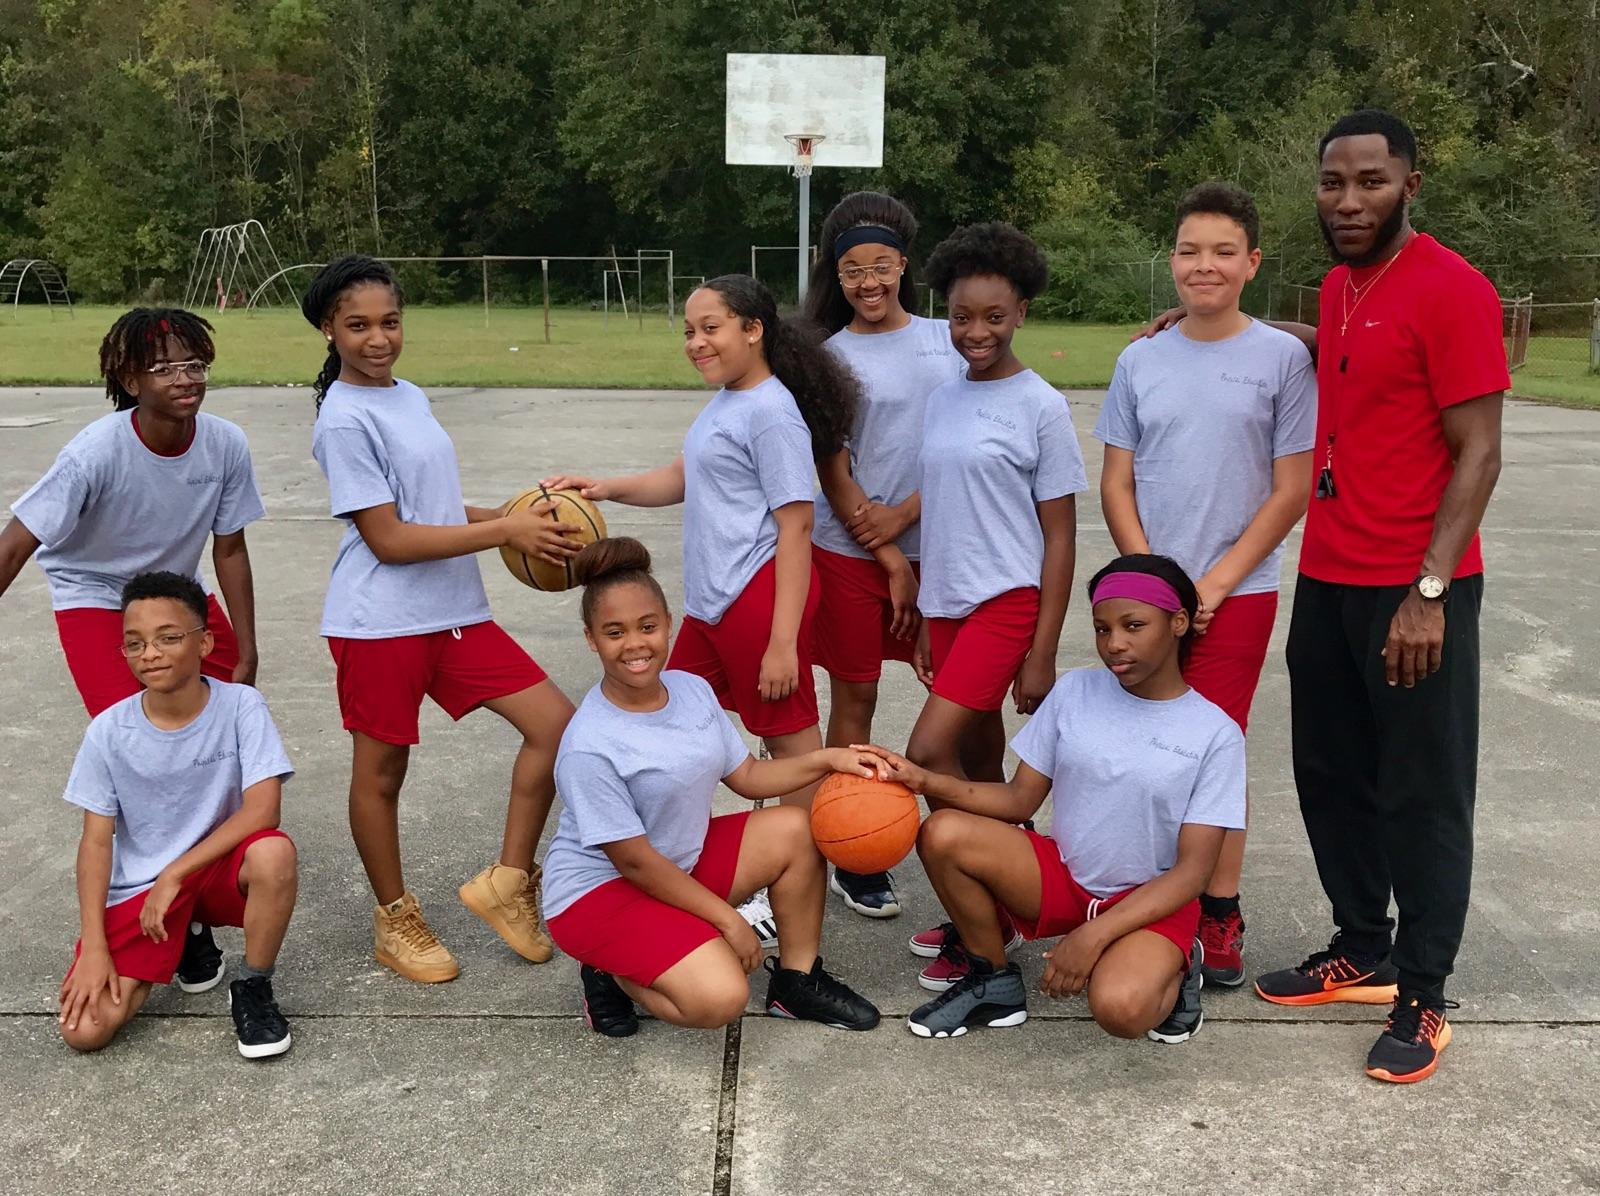 Photo of some Park Ridge Middle School students and their P E teacher in their new gym uniforms